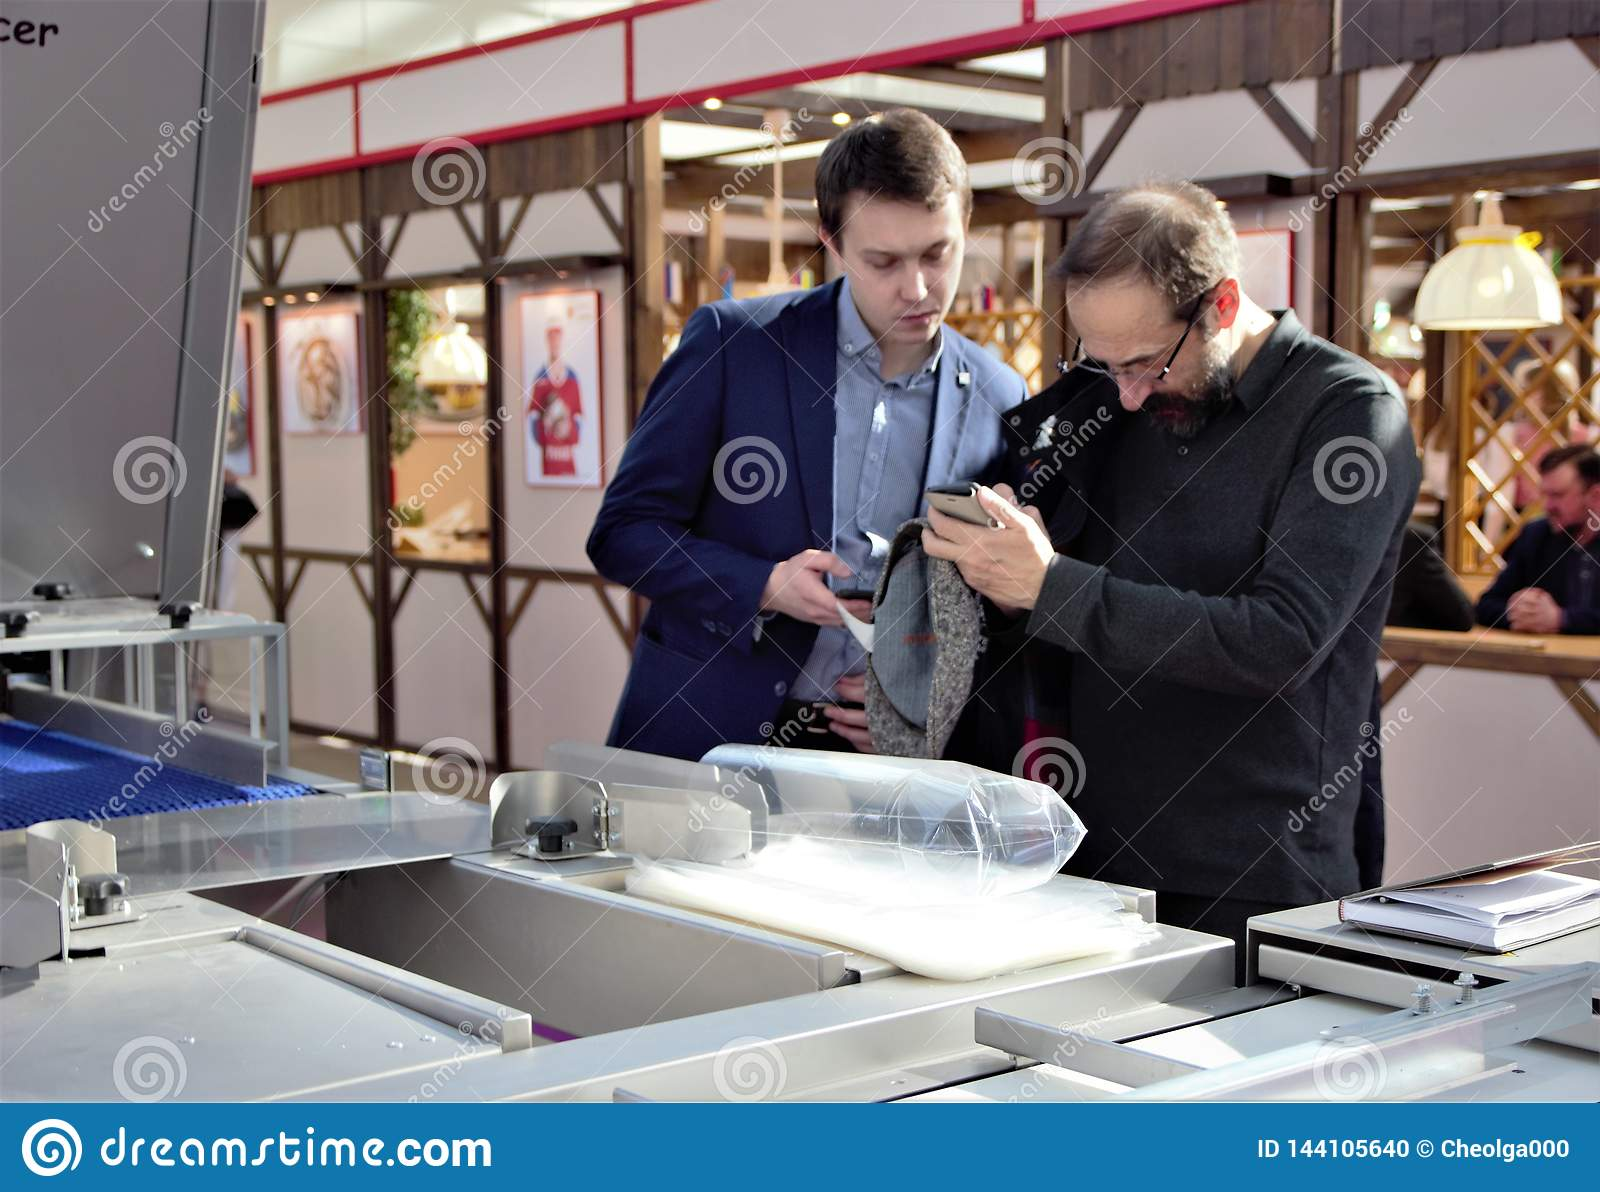 03.14.2019 Russia, Moscow. Exhibition Modern Bakery Moscow,  men remove on the camera mobile phone.